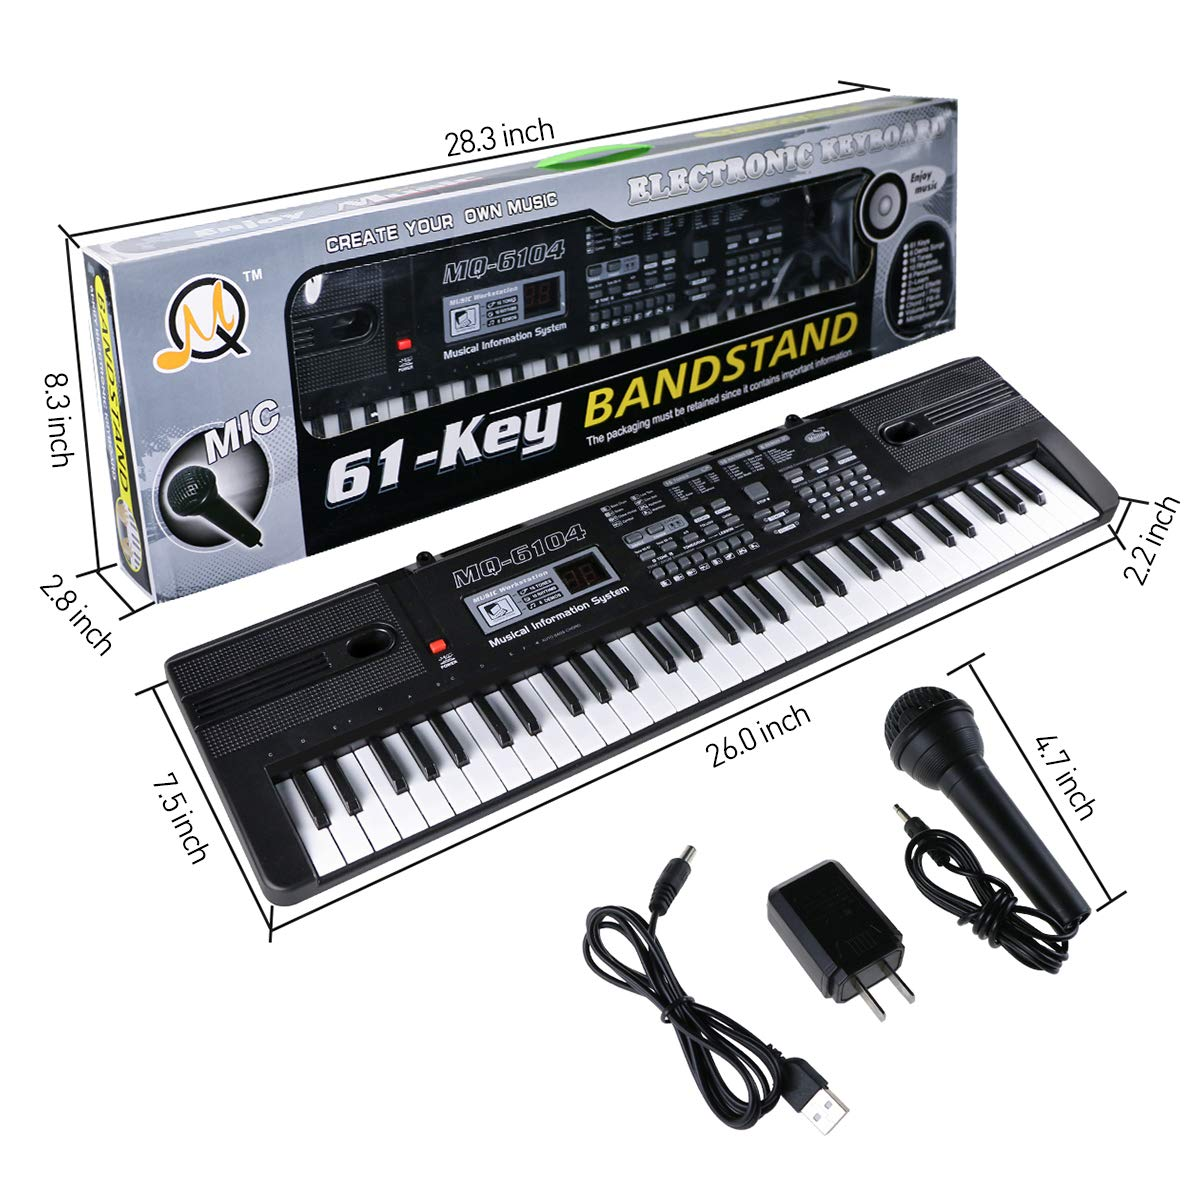 Digital Music Piano Keyboard 61 Key - Portable Electronic Musical Instrument with Microphone Kids Piano Musical Teaching Keyboard Toy For Birthday Christmas Festival Gift by Tencoz (Image #2)